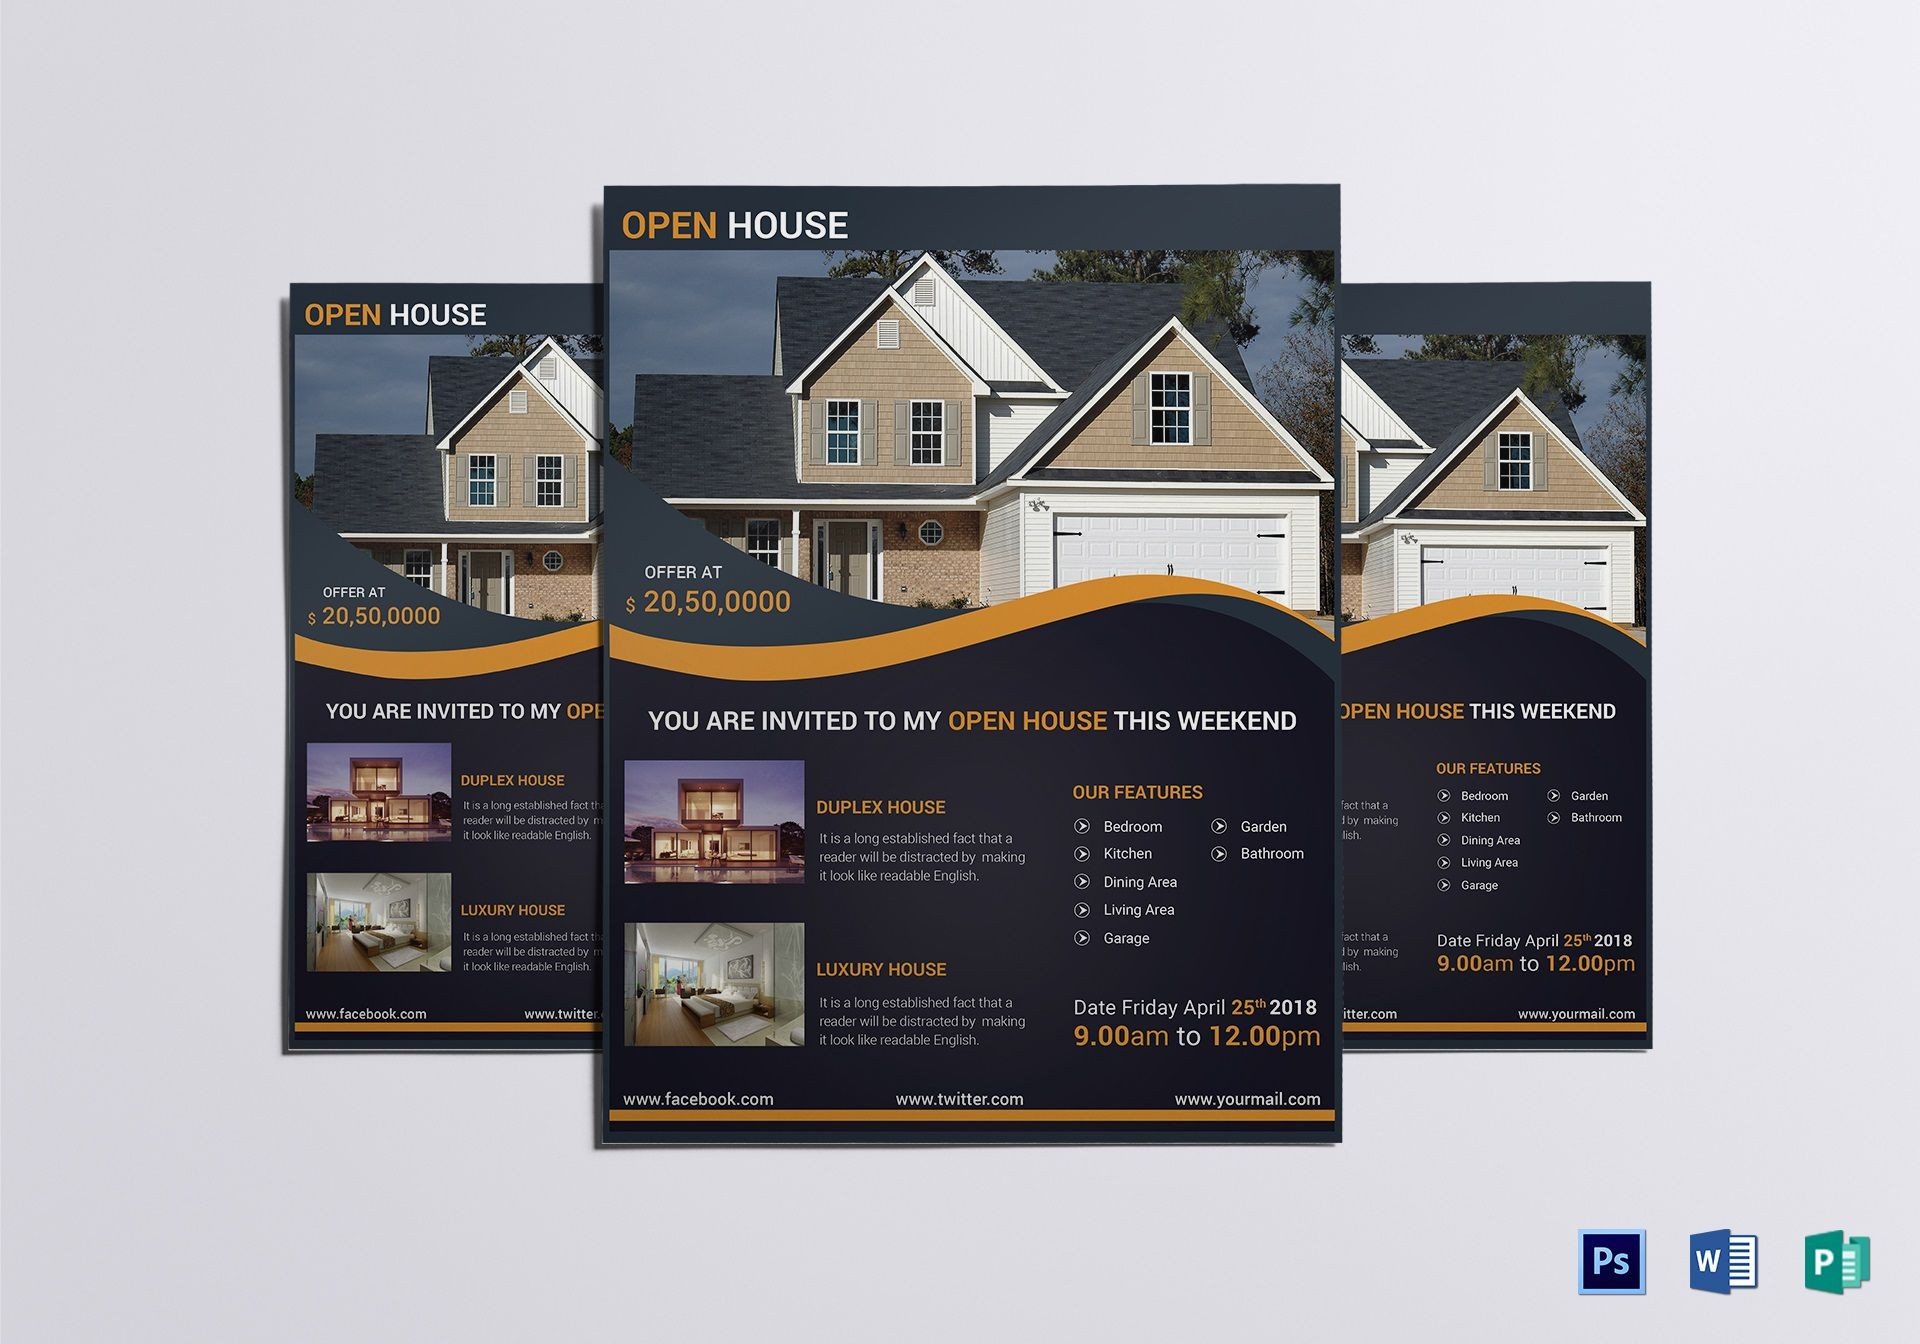 005 Sensational Open House Flyer Template Word Sample  Free Microsoft1920